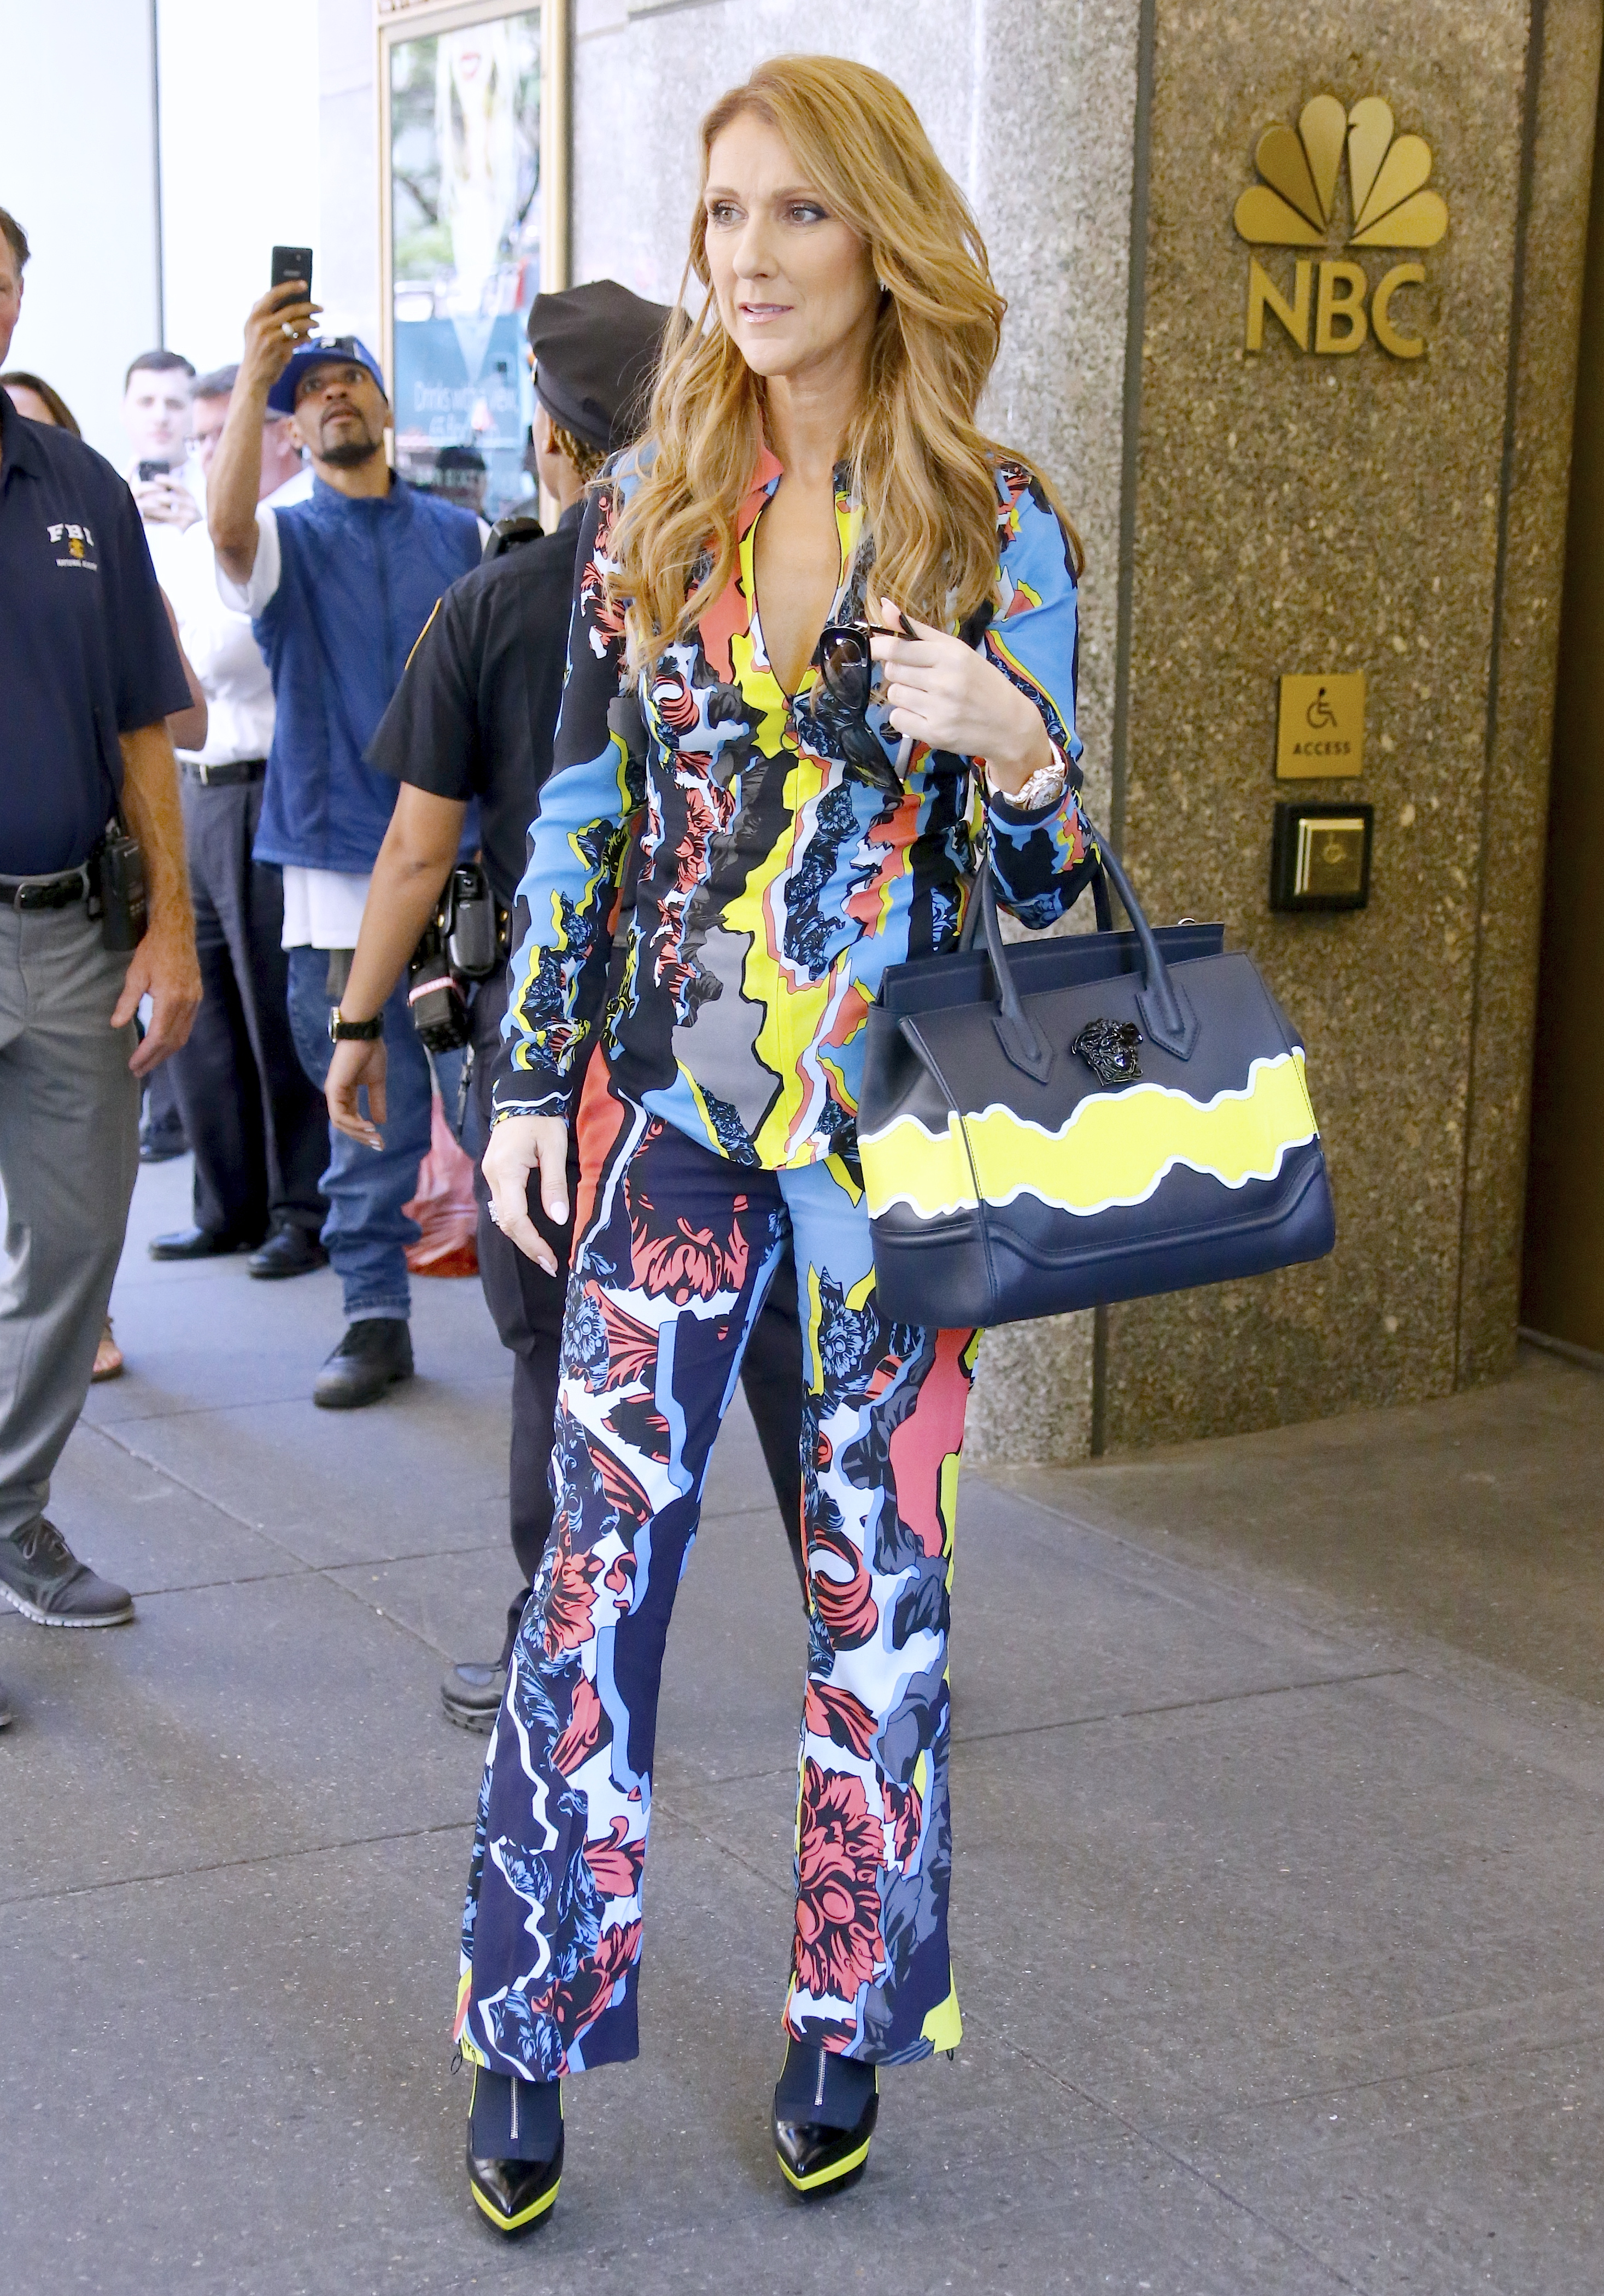 Recent Fugs and Fabs: Catching Up With Celine Dion